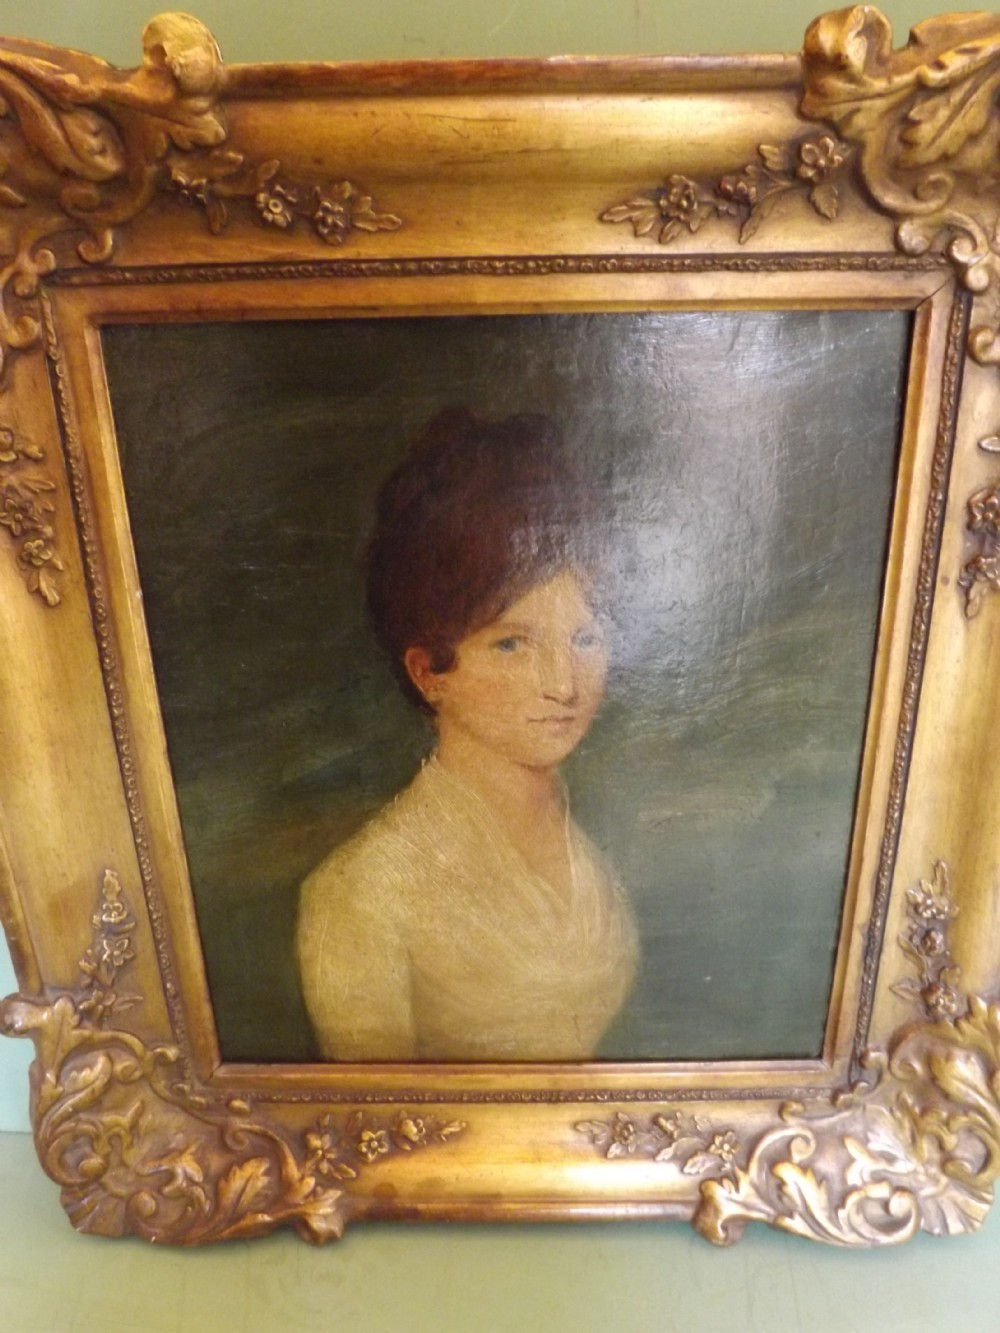 c19th portrait oil painting on canvas 'young woman'